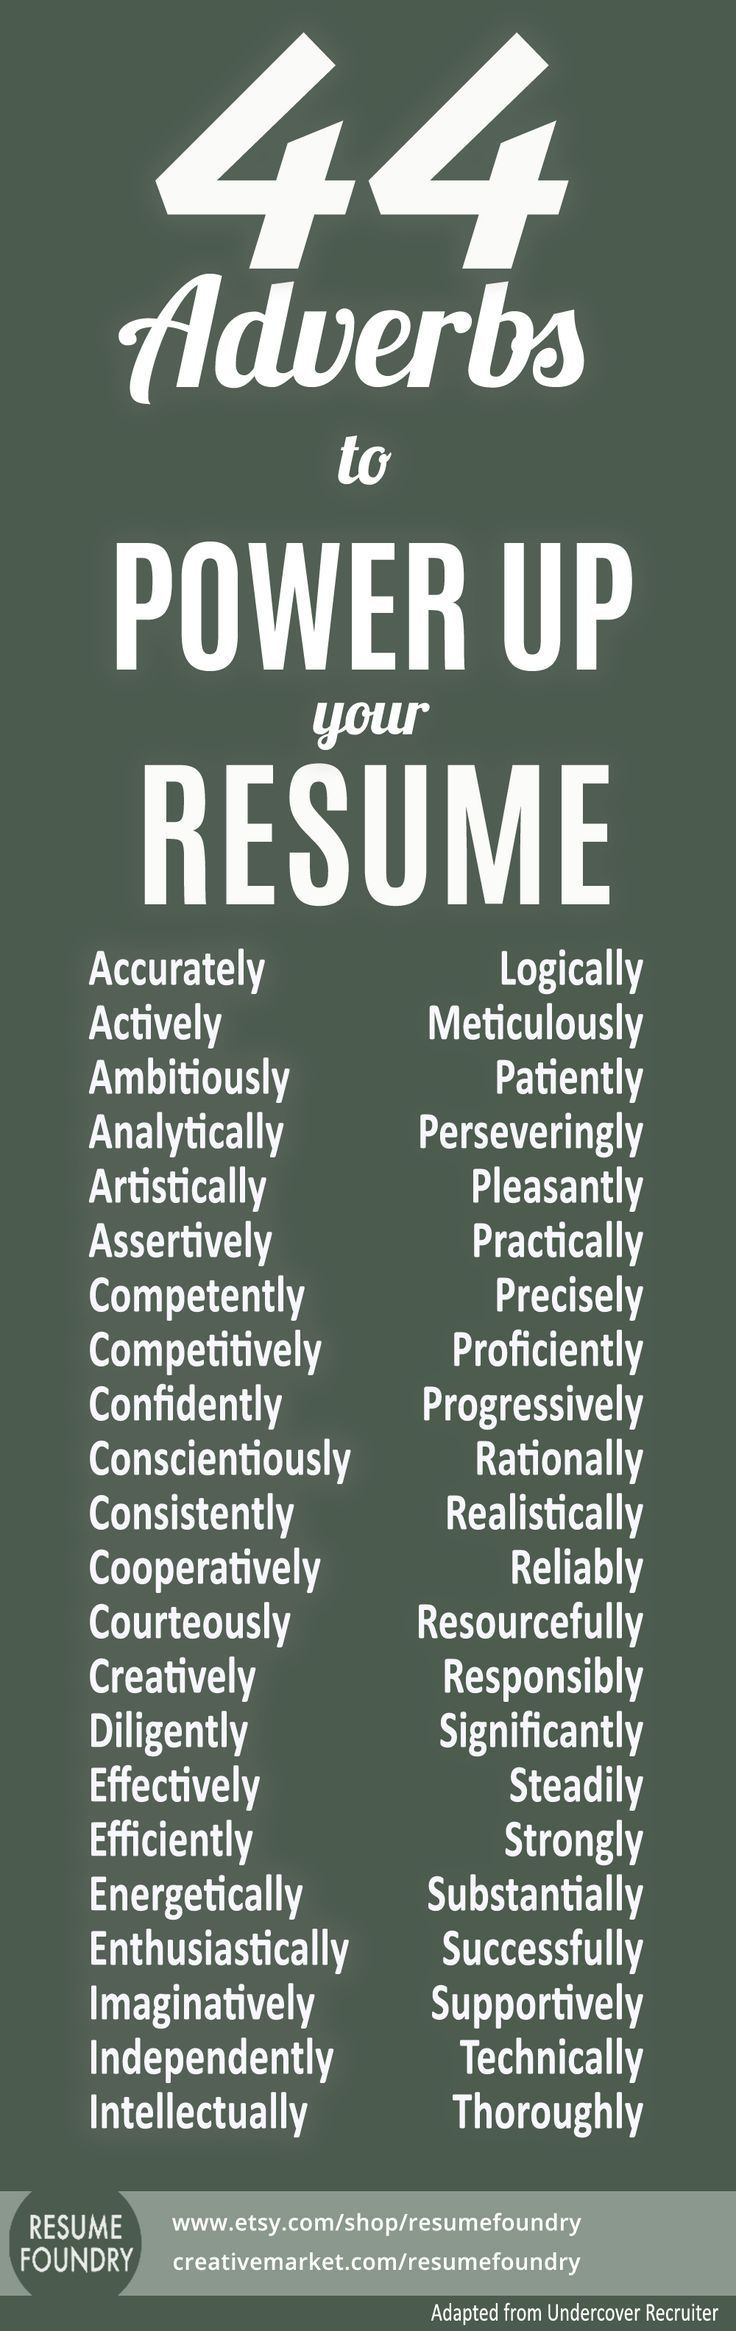 format resume writing%0A    resume writing tips